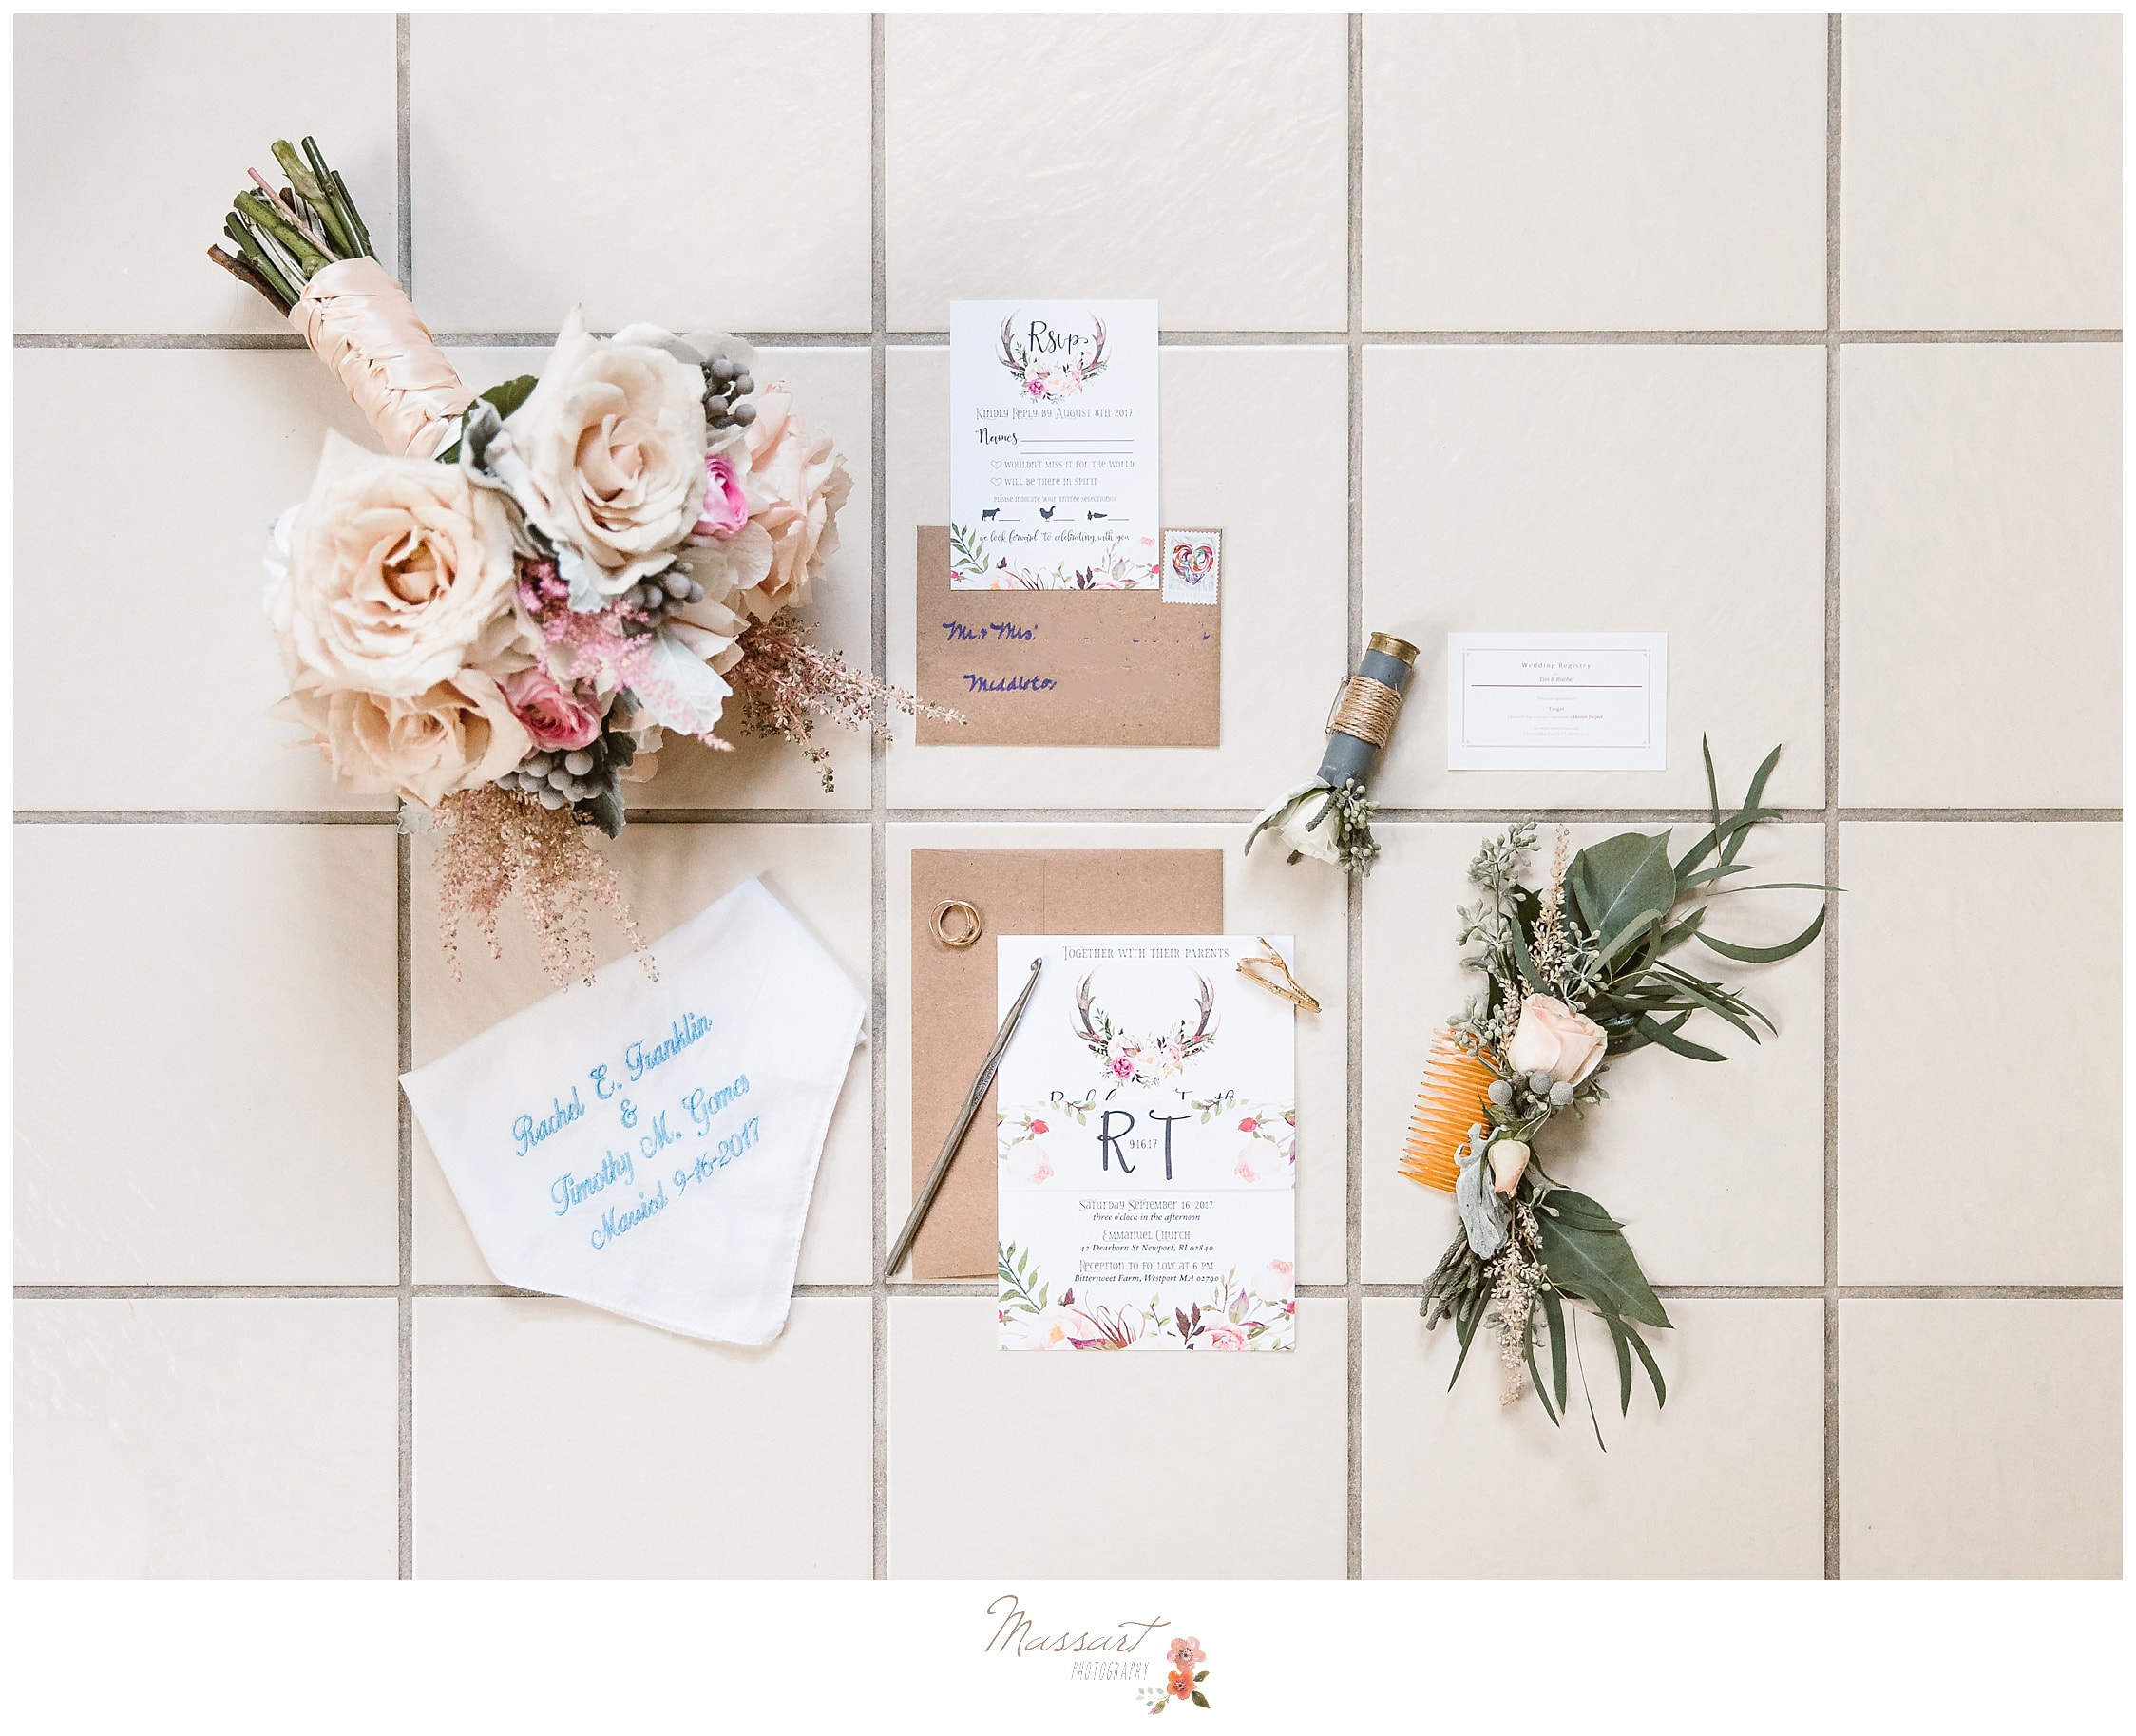 wedding invitation and details for rhode island wedding